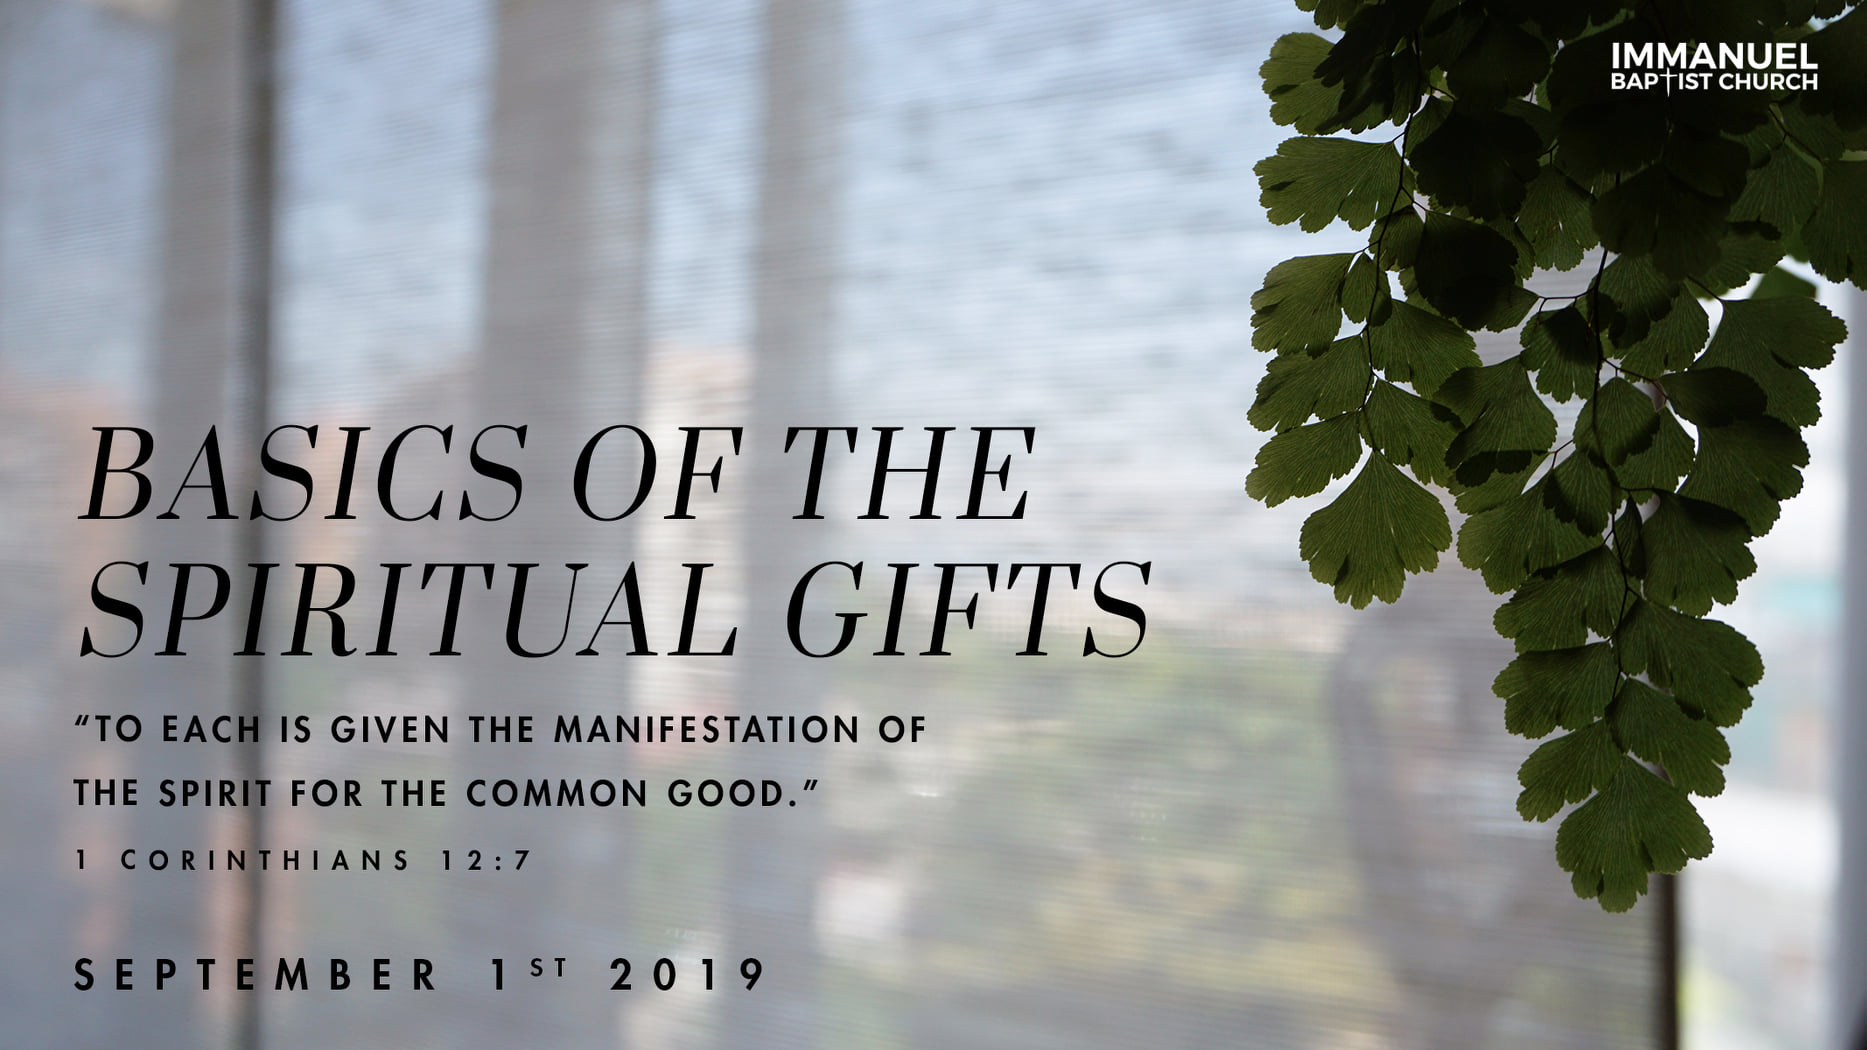 Basics of the Spiritual Gifts